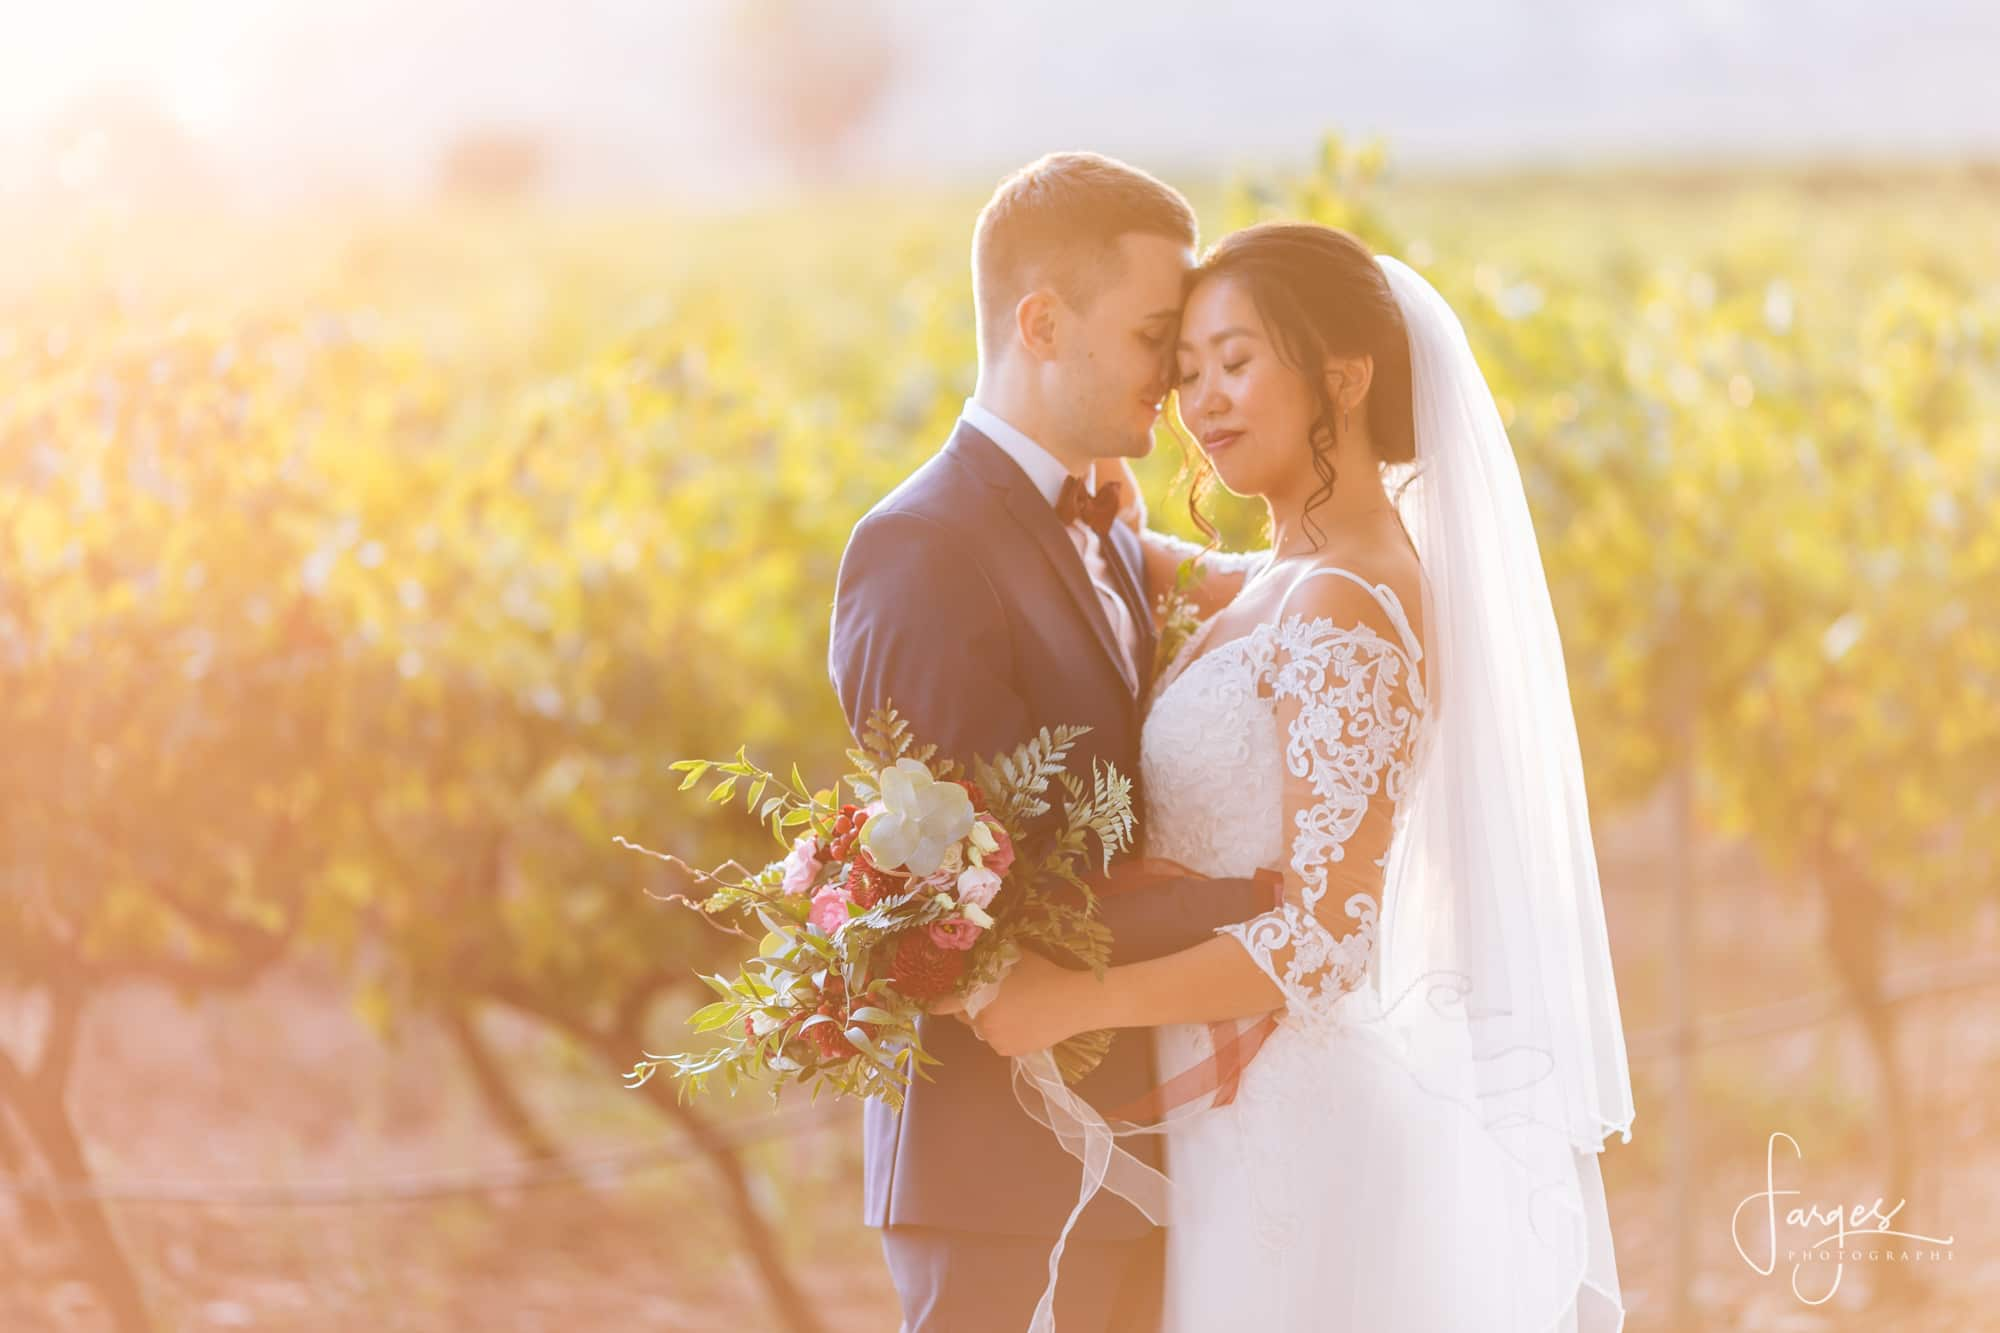 bride-groom-couple-vines-vineyard-wedding-chateau-venue-reception-south-france-provence-magic